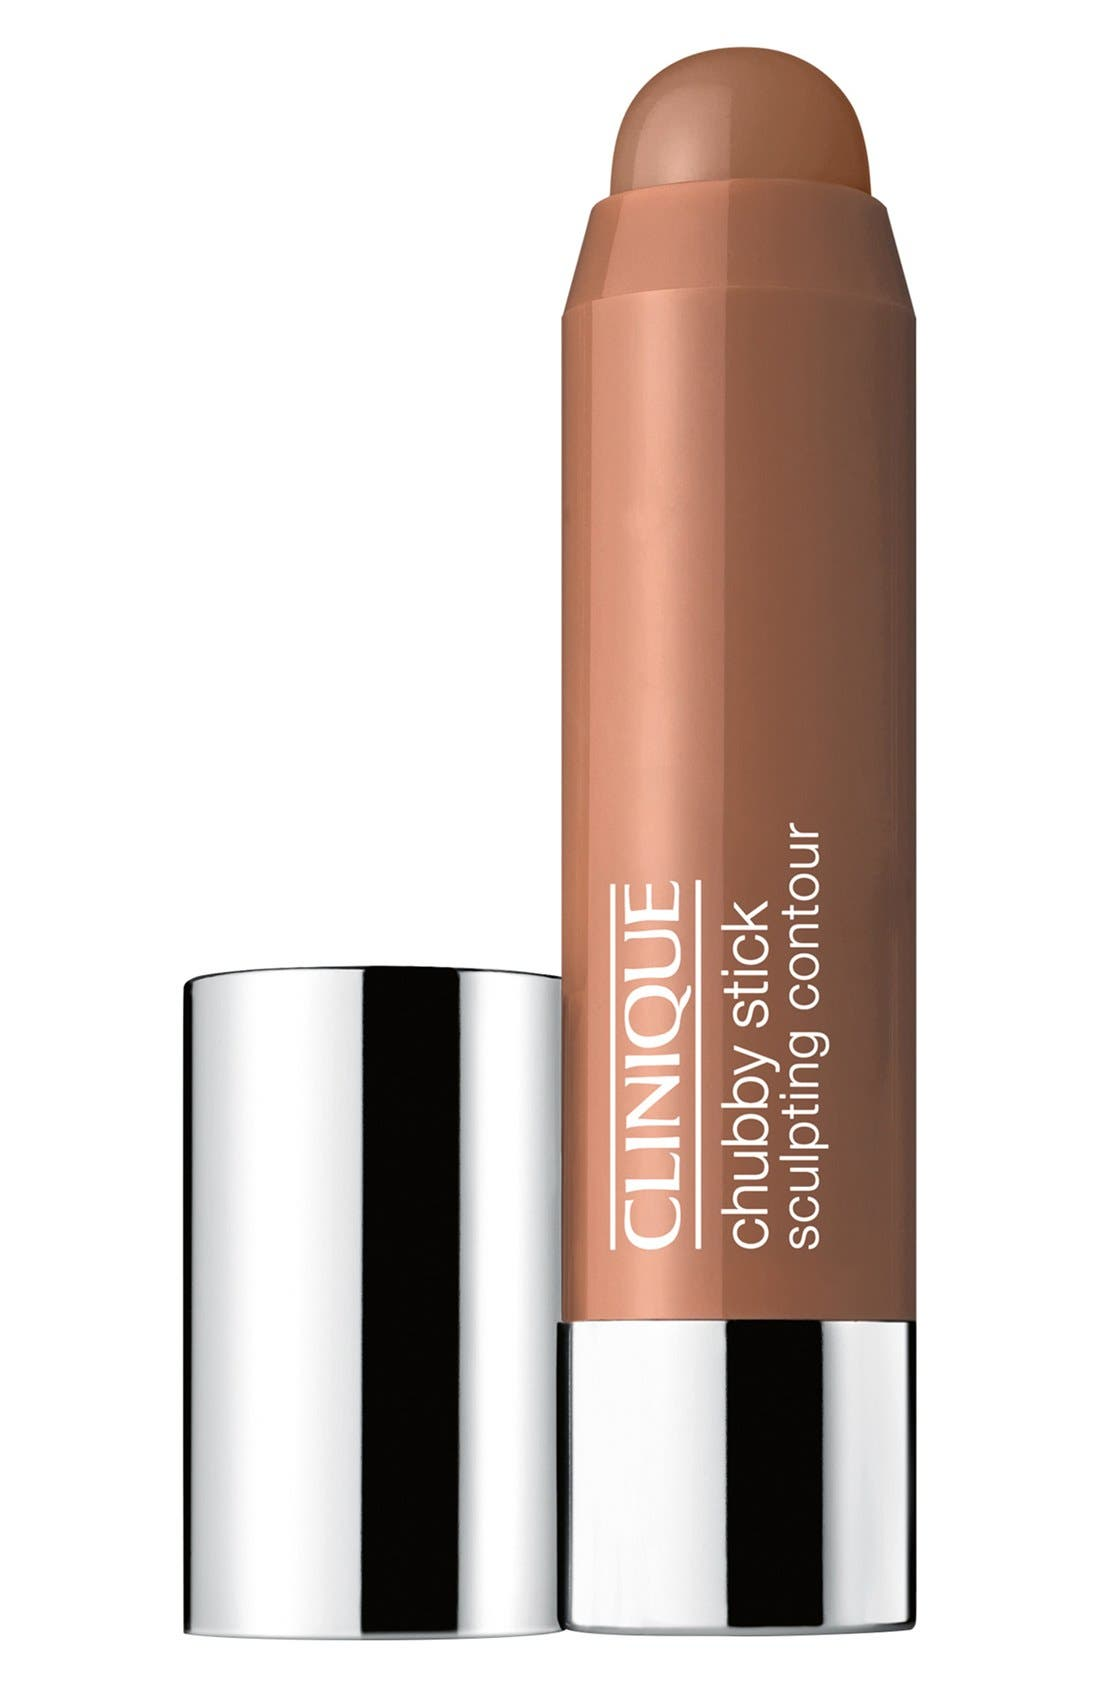 Clinique 'Chubby Stick' Sculpting Contour